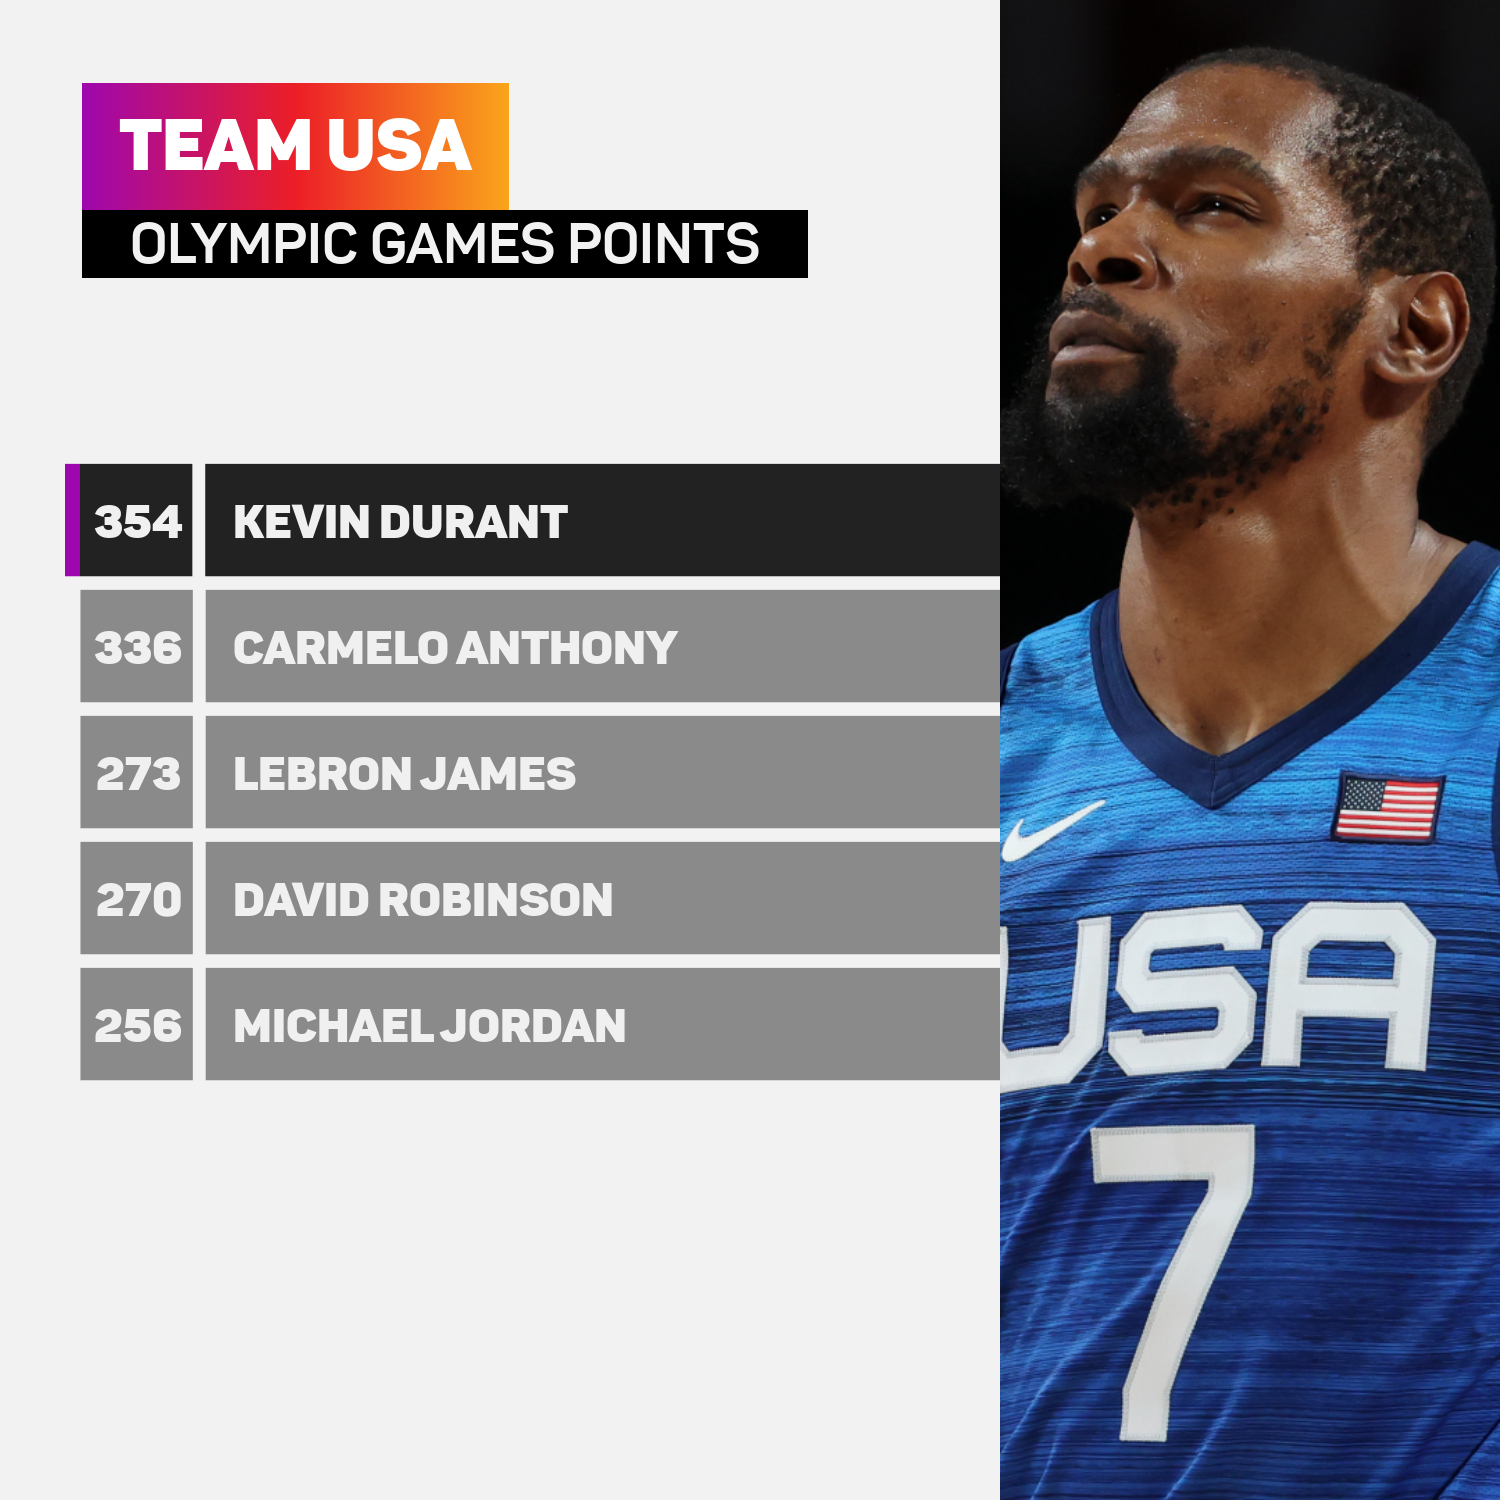 Kevin Durant leads Team USA